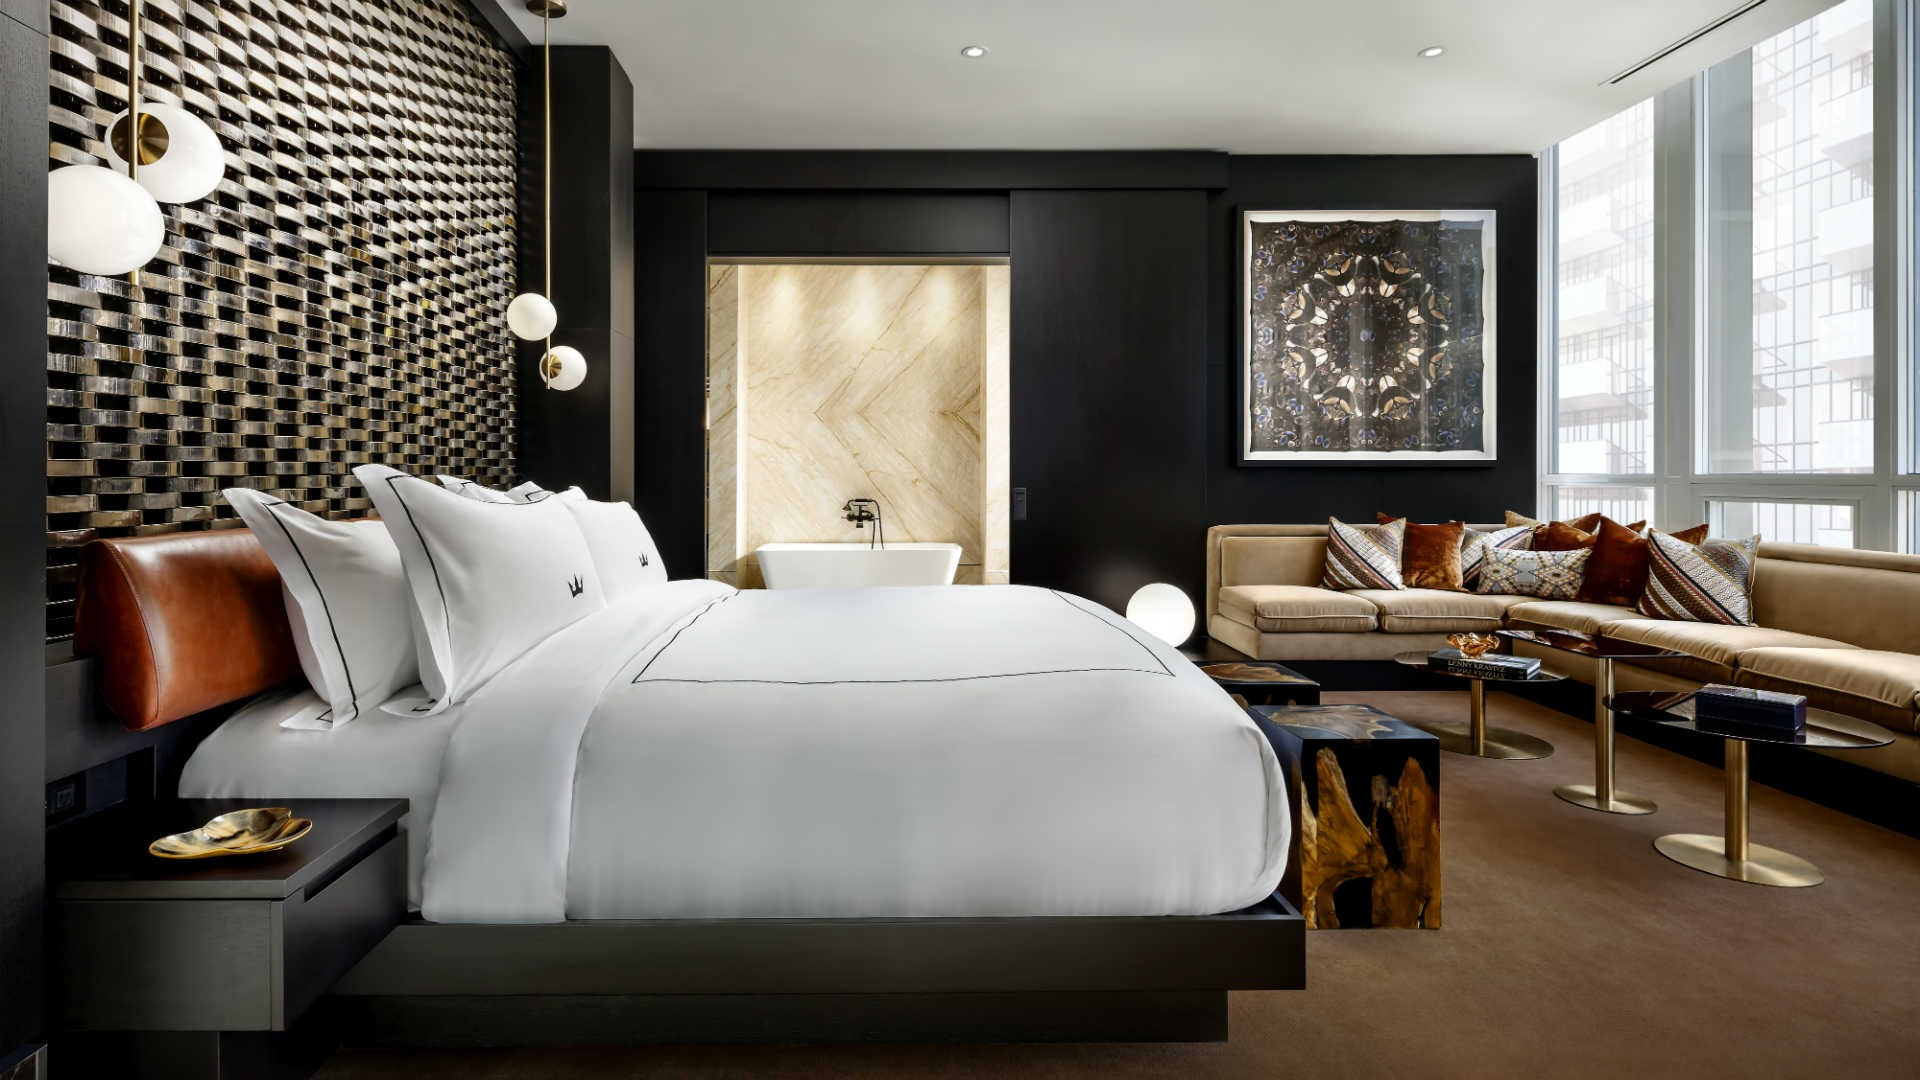 Best hotels Toronto staycation | The Bisha Hotel one bedroom suite